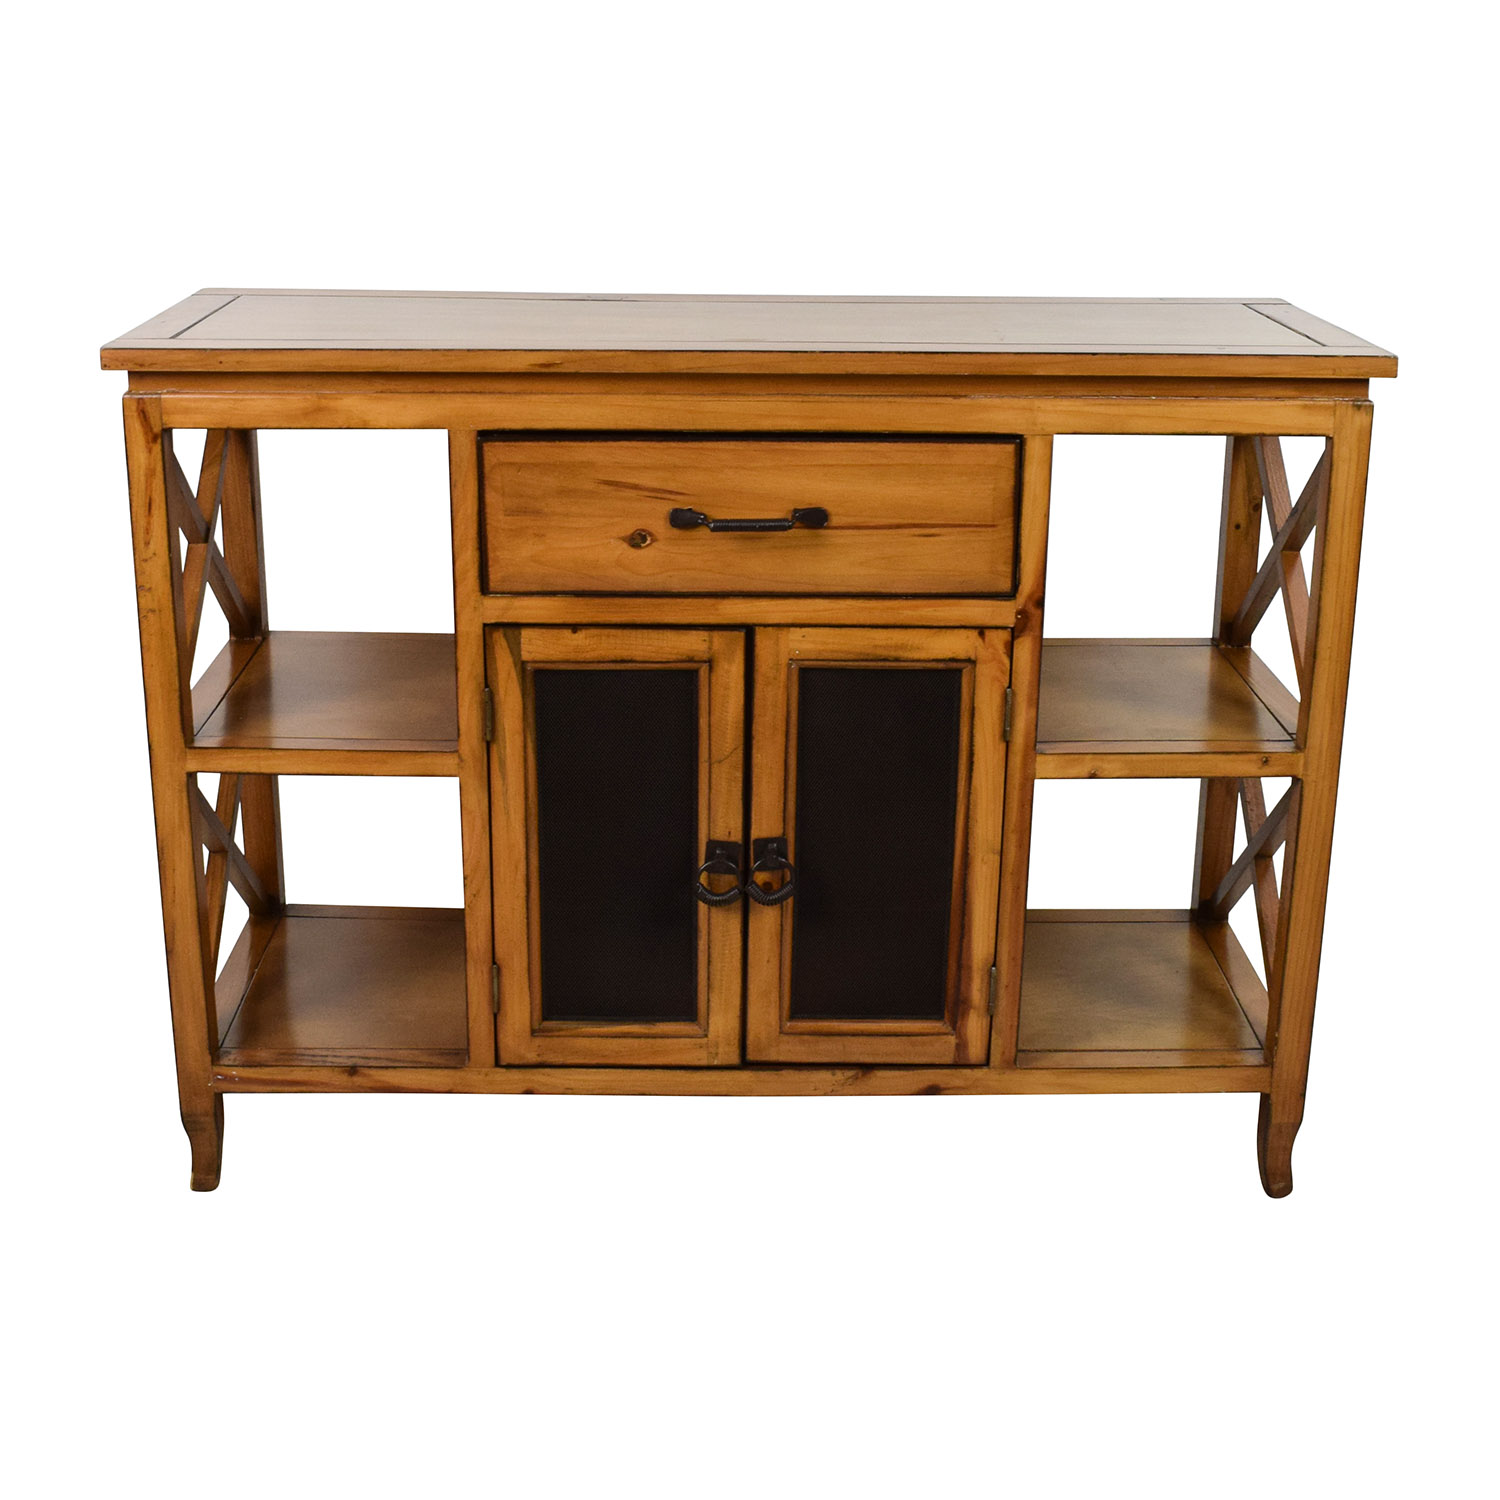 Brown Wooden Entrance Table dimensions